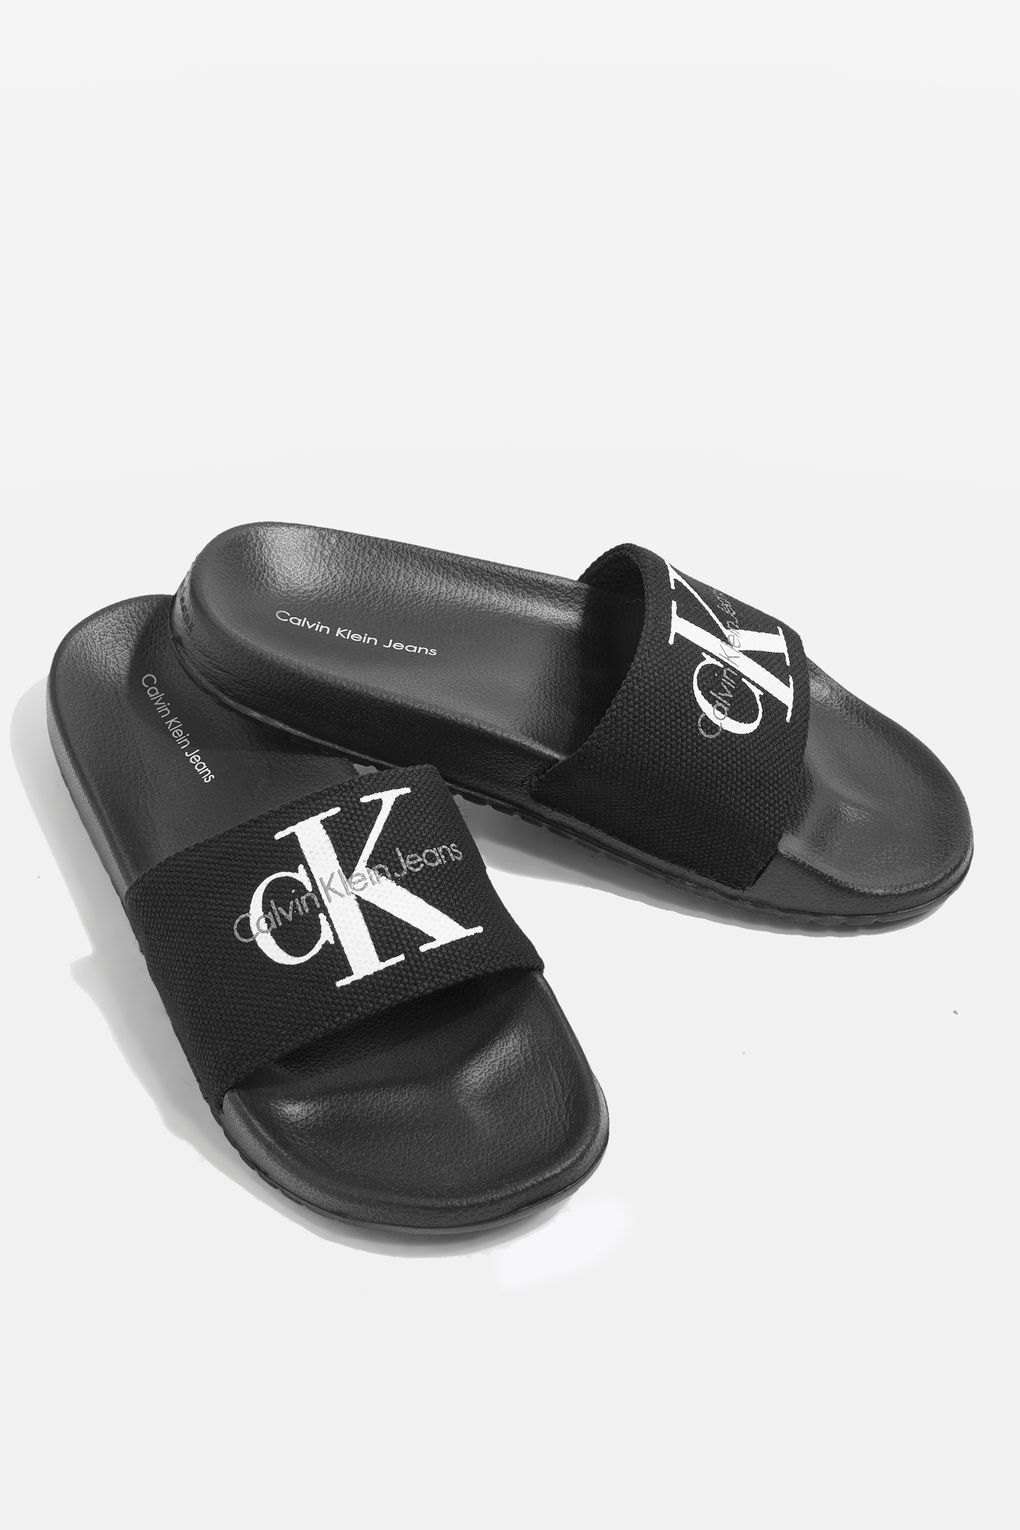 Jean Sliders by Calvin Klein - Shoes- Topshop e7c12f9ef6